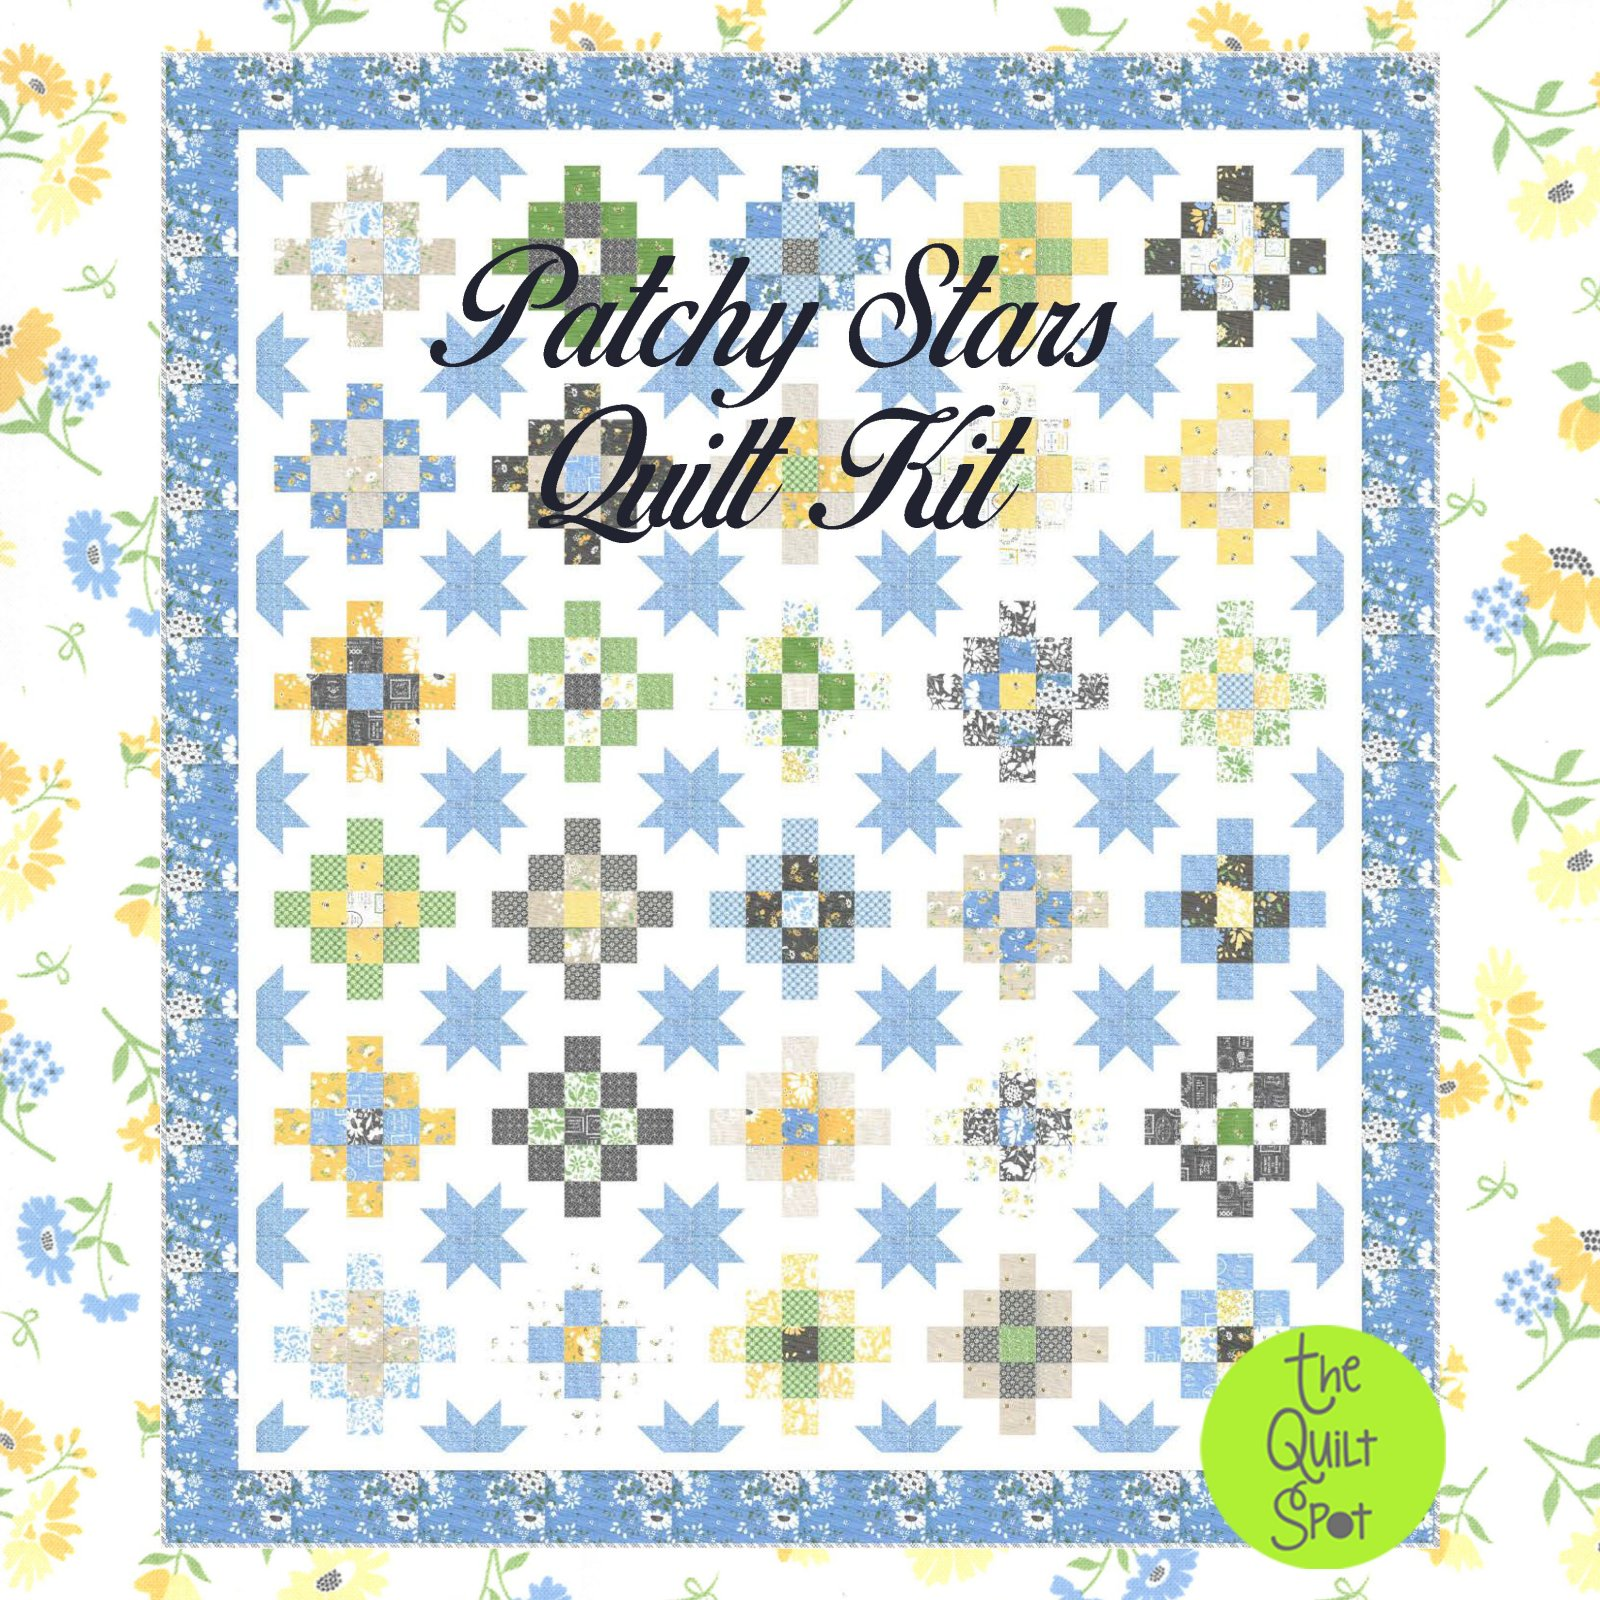 Patchy Stars Quilt Kit featuring Spring Brook by Corey Yoder